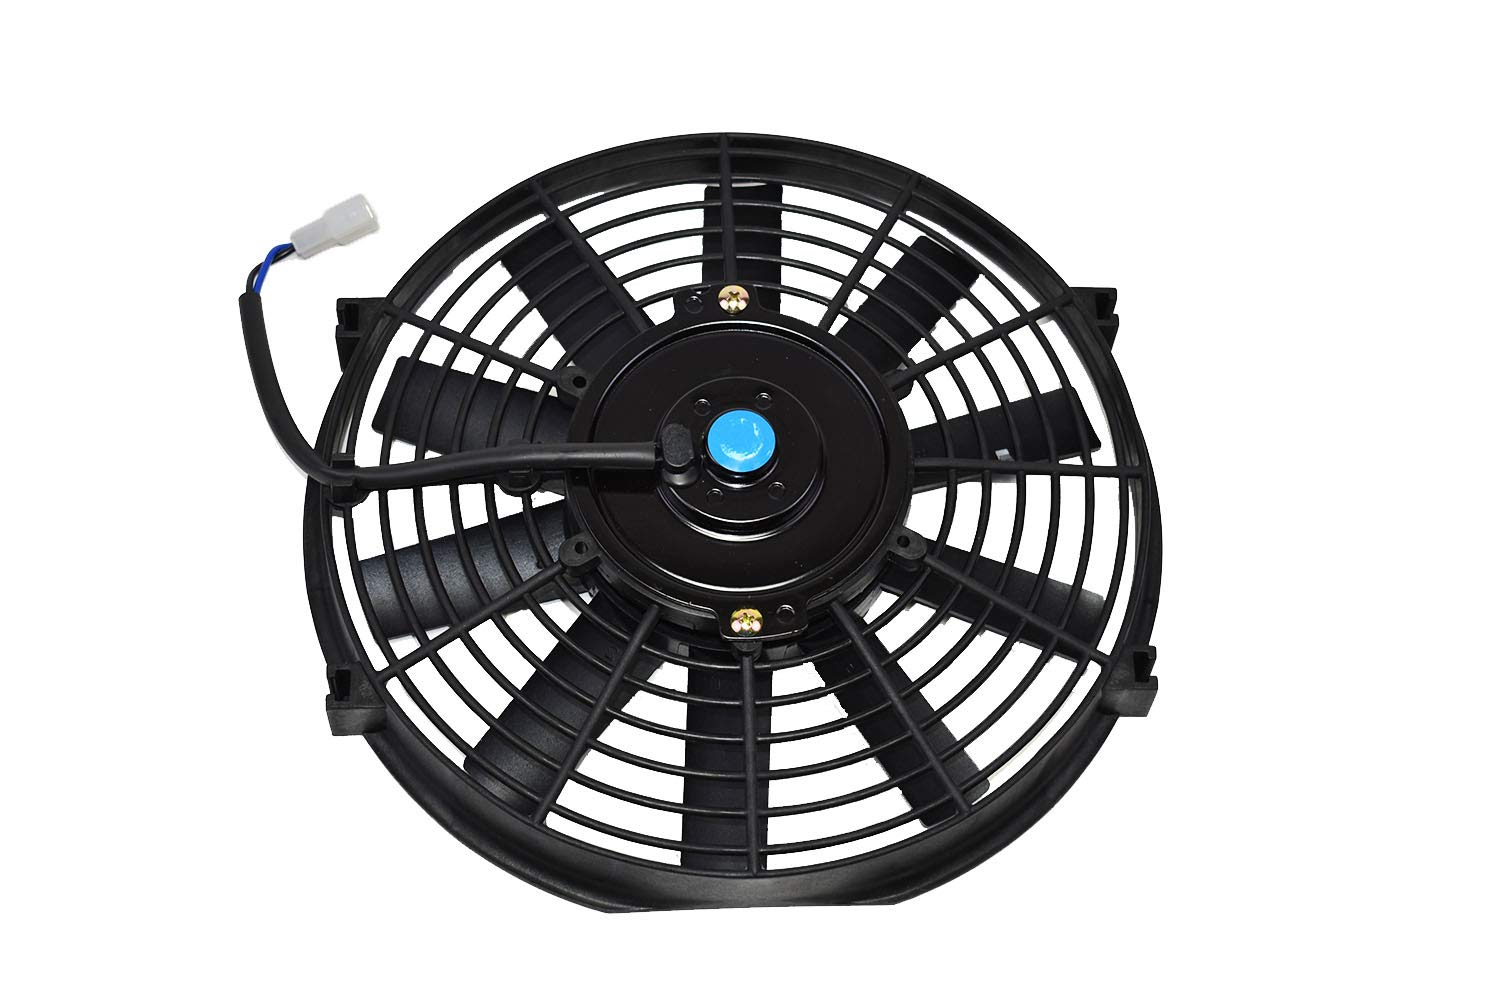 A-Team Performance 150051 Electric Car Radiator Cooling Fan Transmission Auto Cooler High Performance 850 CFM 12V Reversible Flat 10 Blades Black 10 Inches